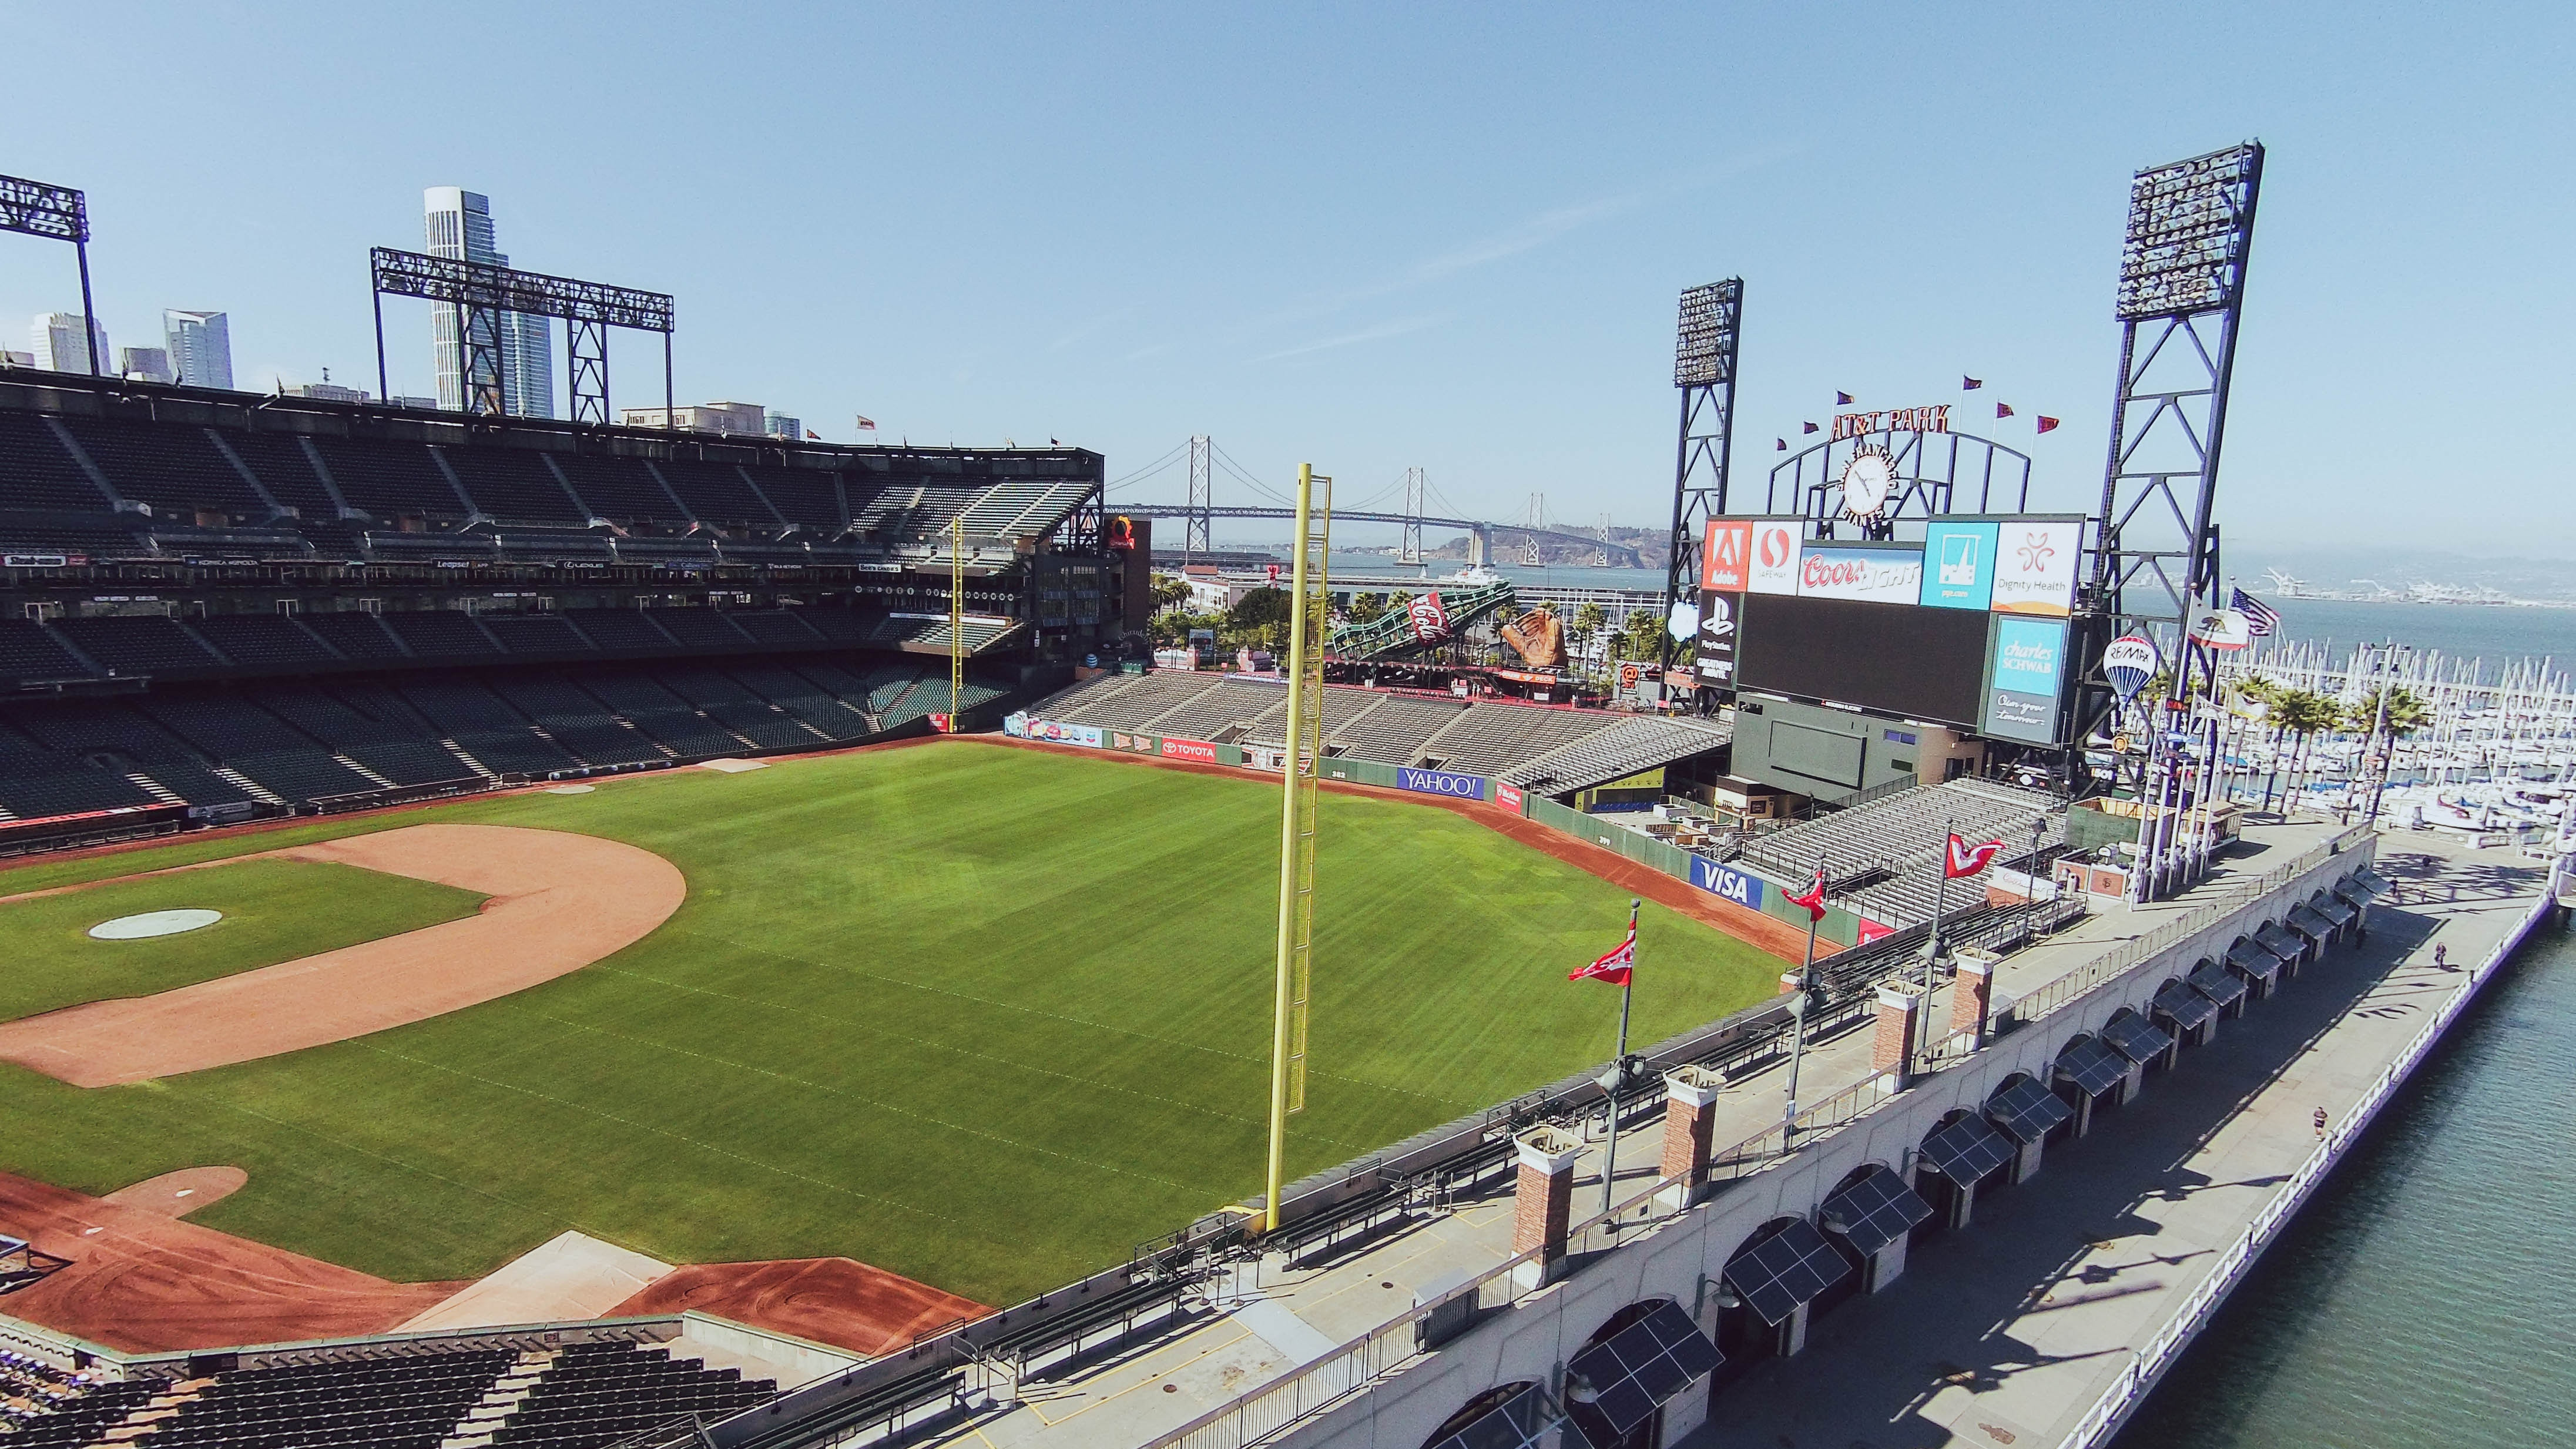 2020 Giant's Game from McCovey Cove